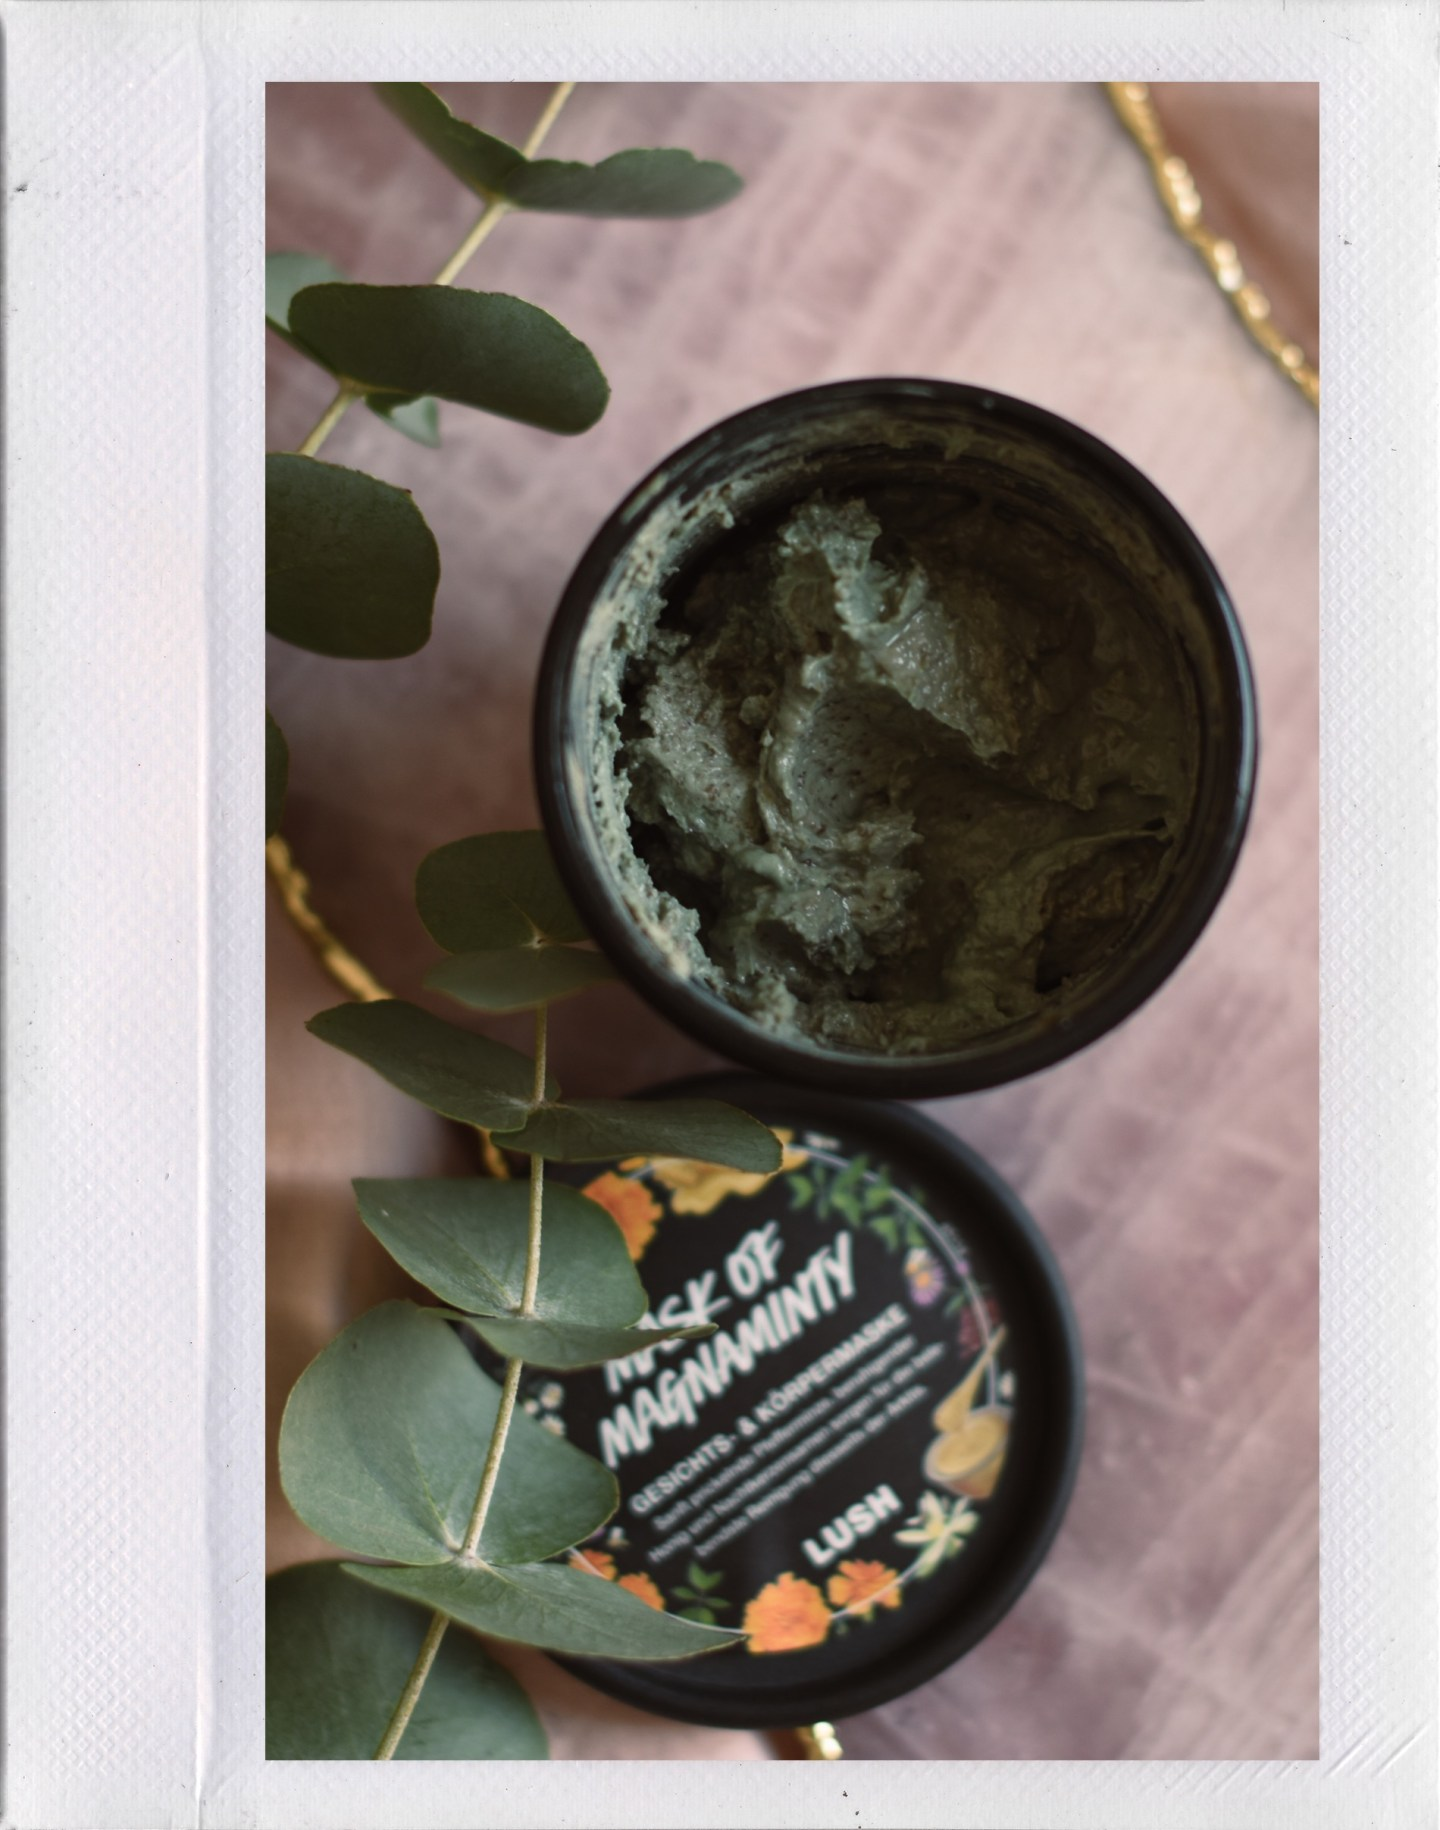 Lush Cosmetics Mask of Magnaminty self-preserving